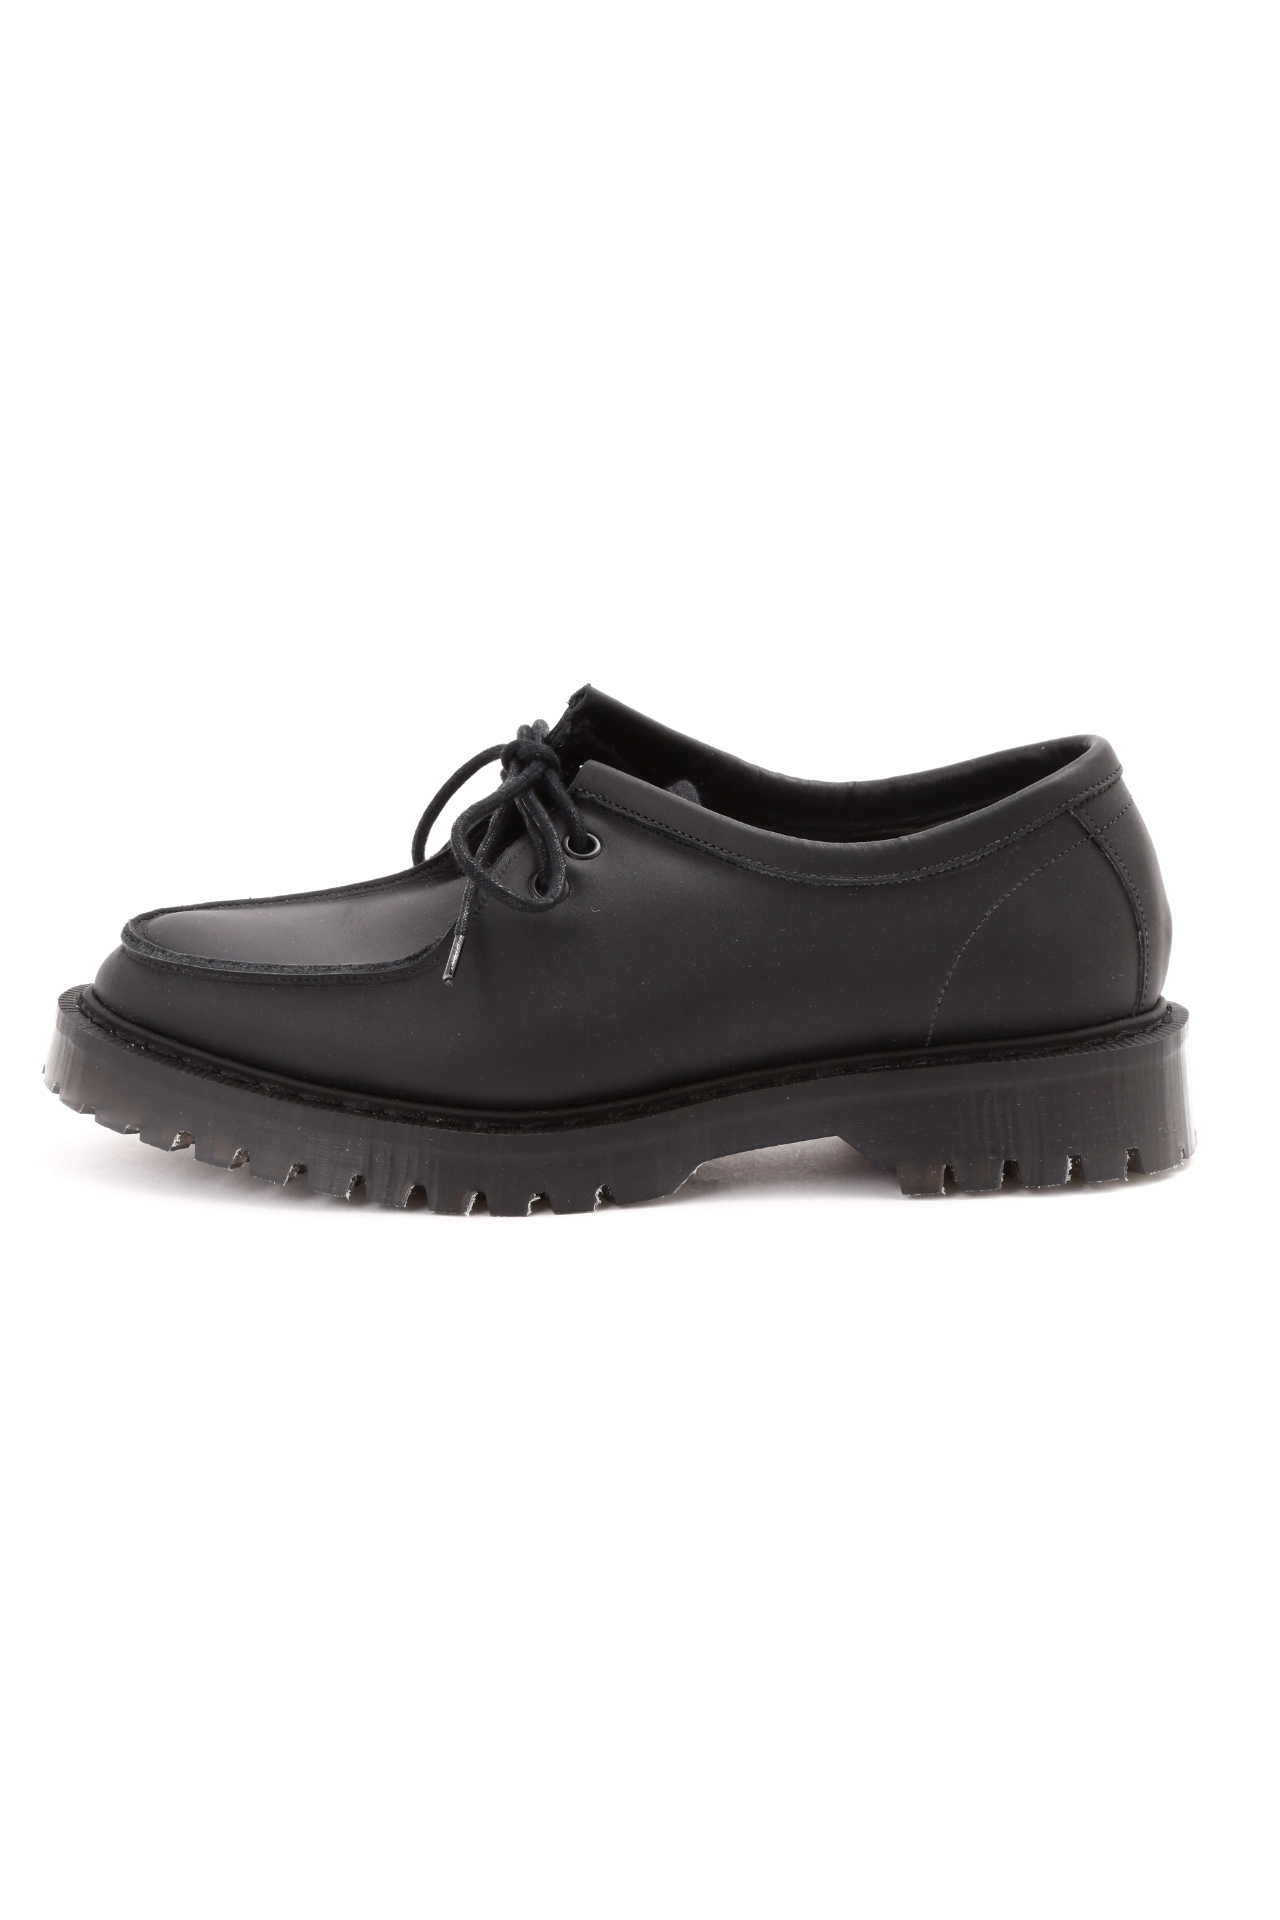 MHL MOCCASIN SHOE(MHL SHOP限定)2